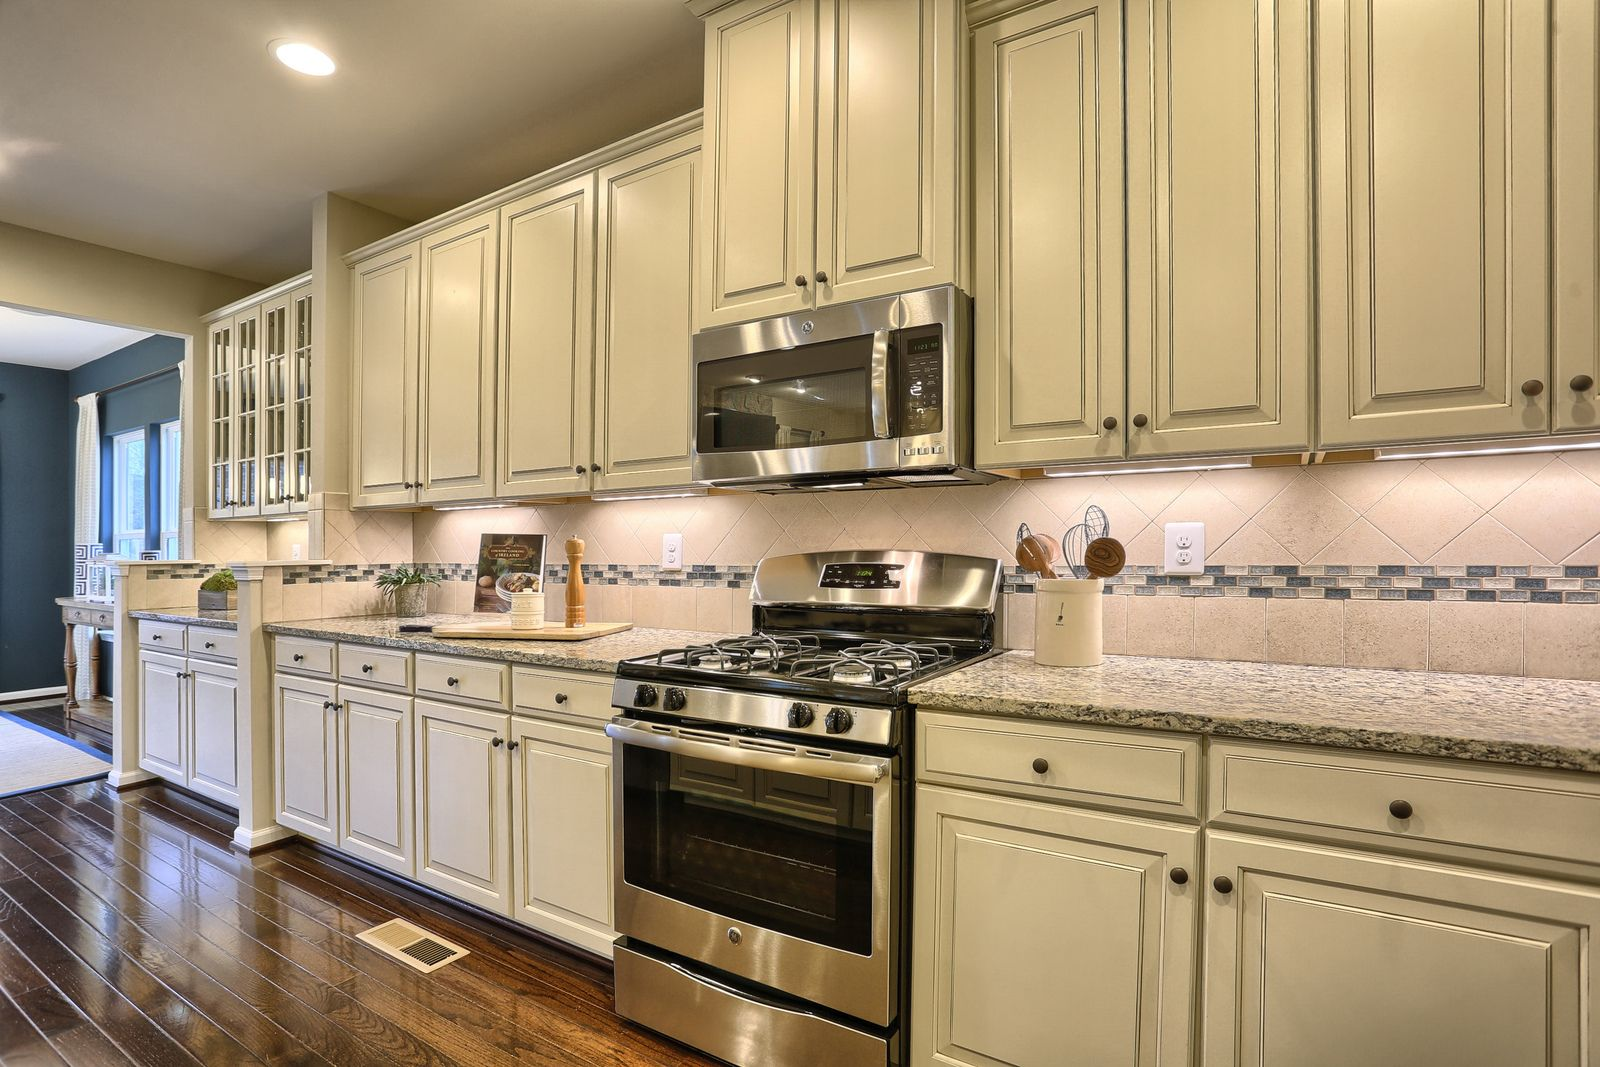 Kitchen featured in the Pisa Torre By Ryan Homes in Harrisburg, PA